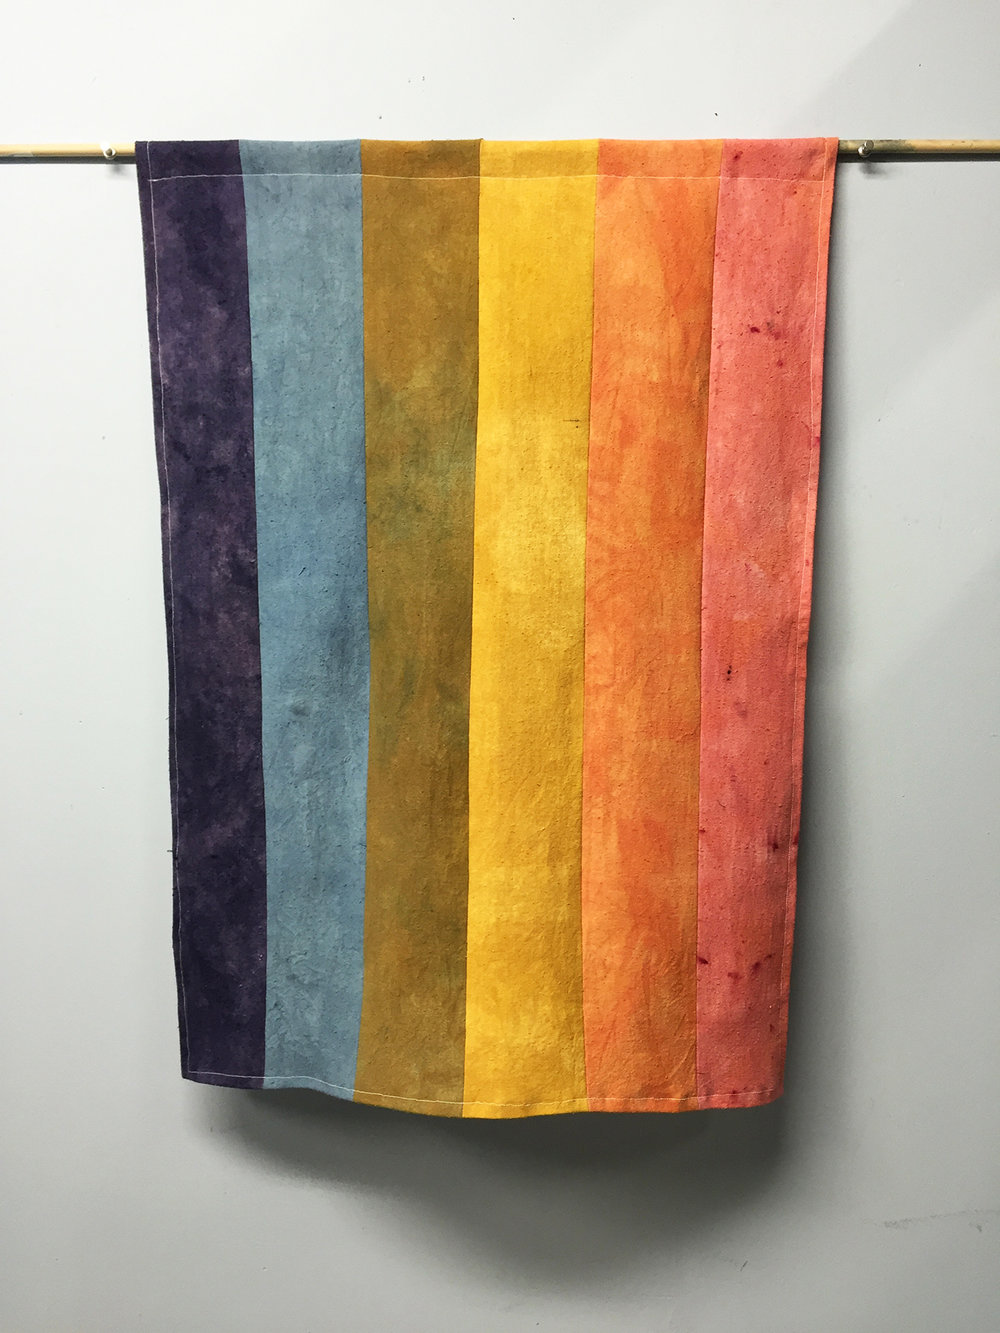 Naturally dyed Pride Flags are for sale on the Wax & Wane Fiber website.